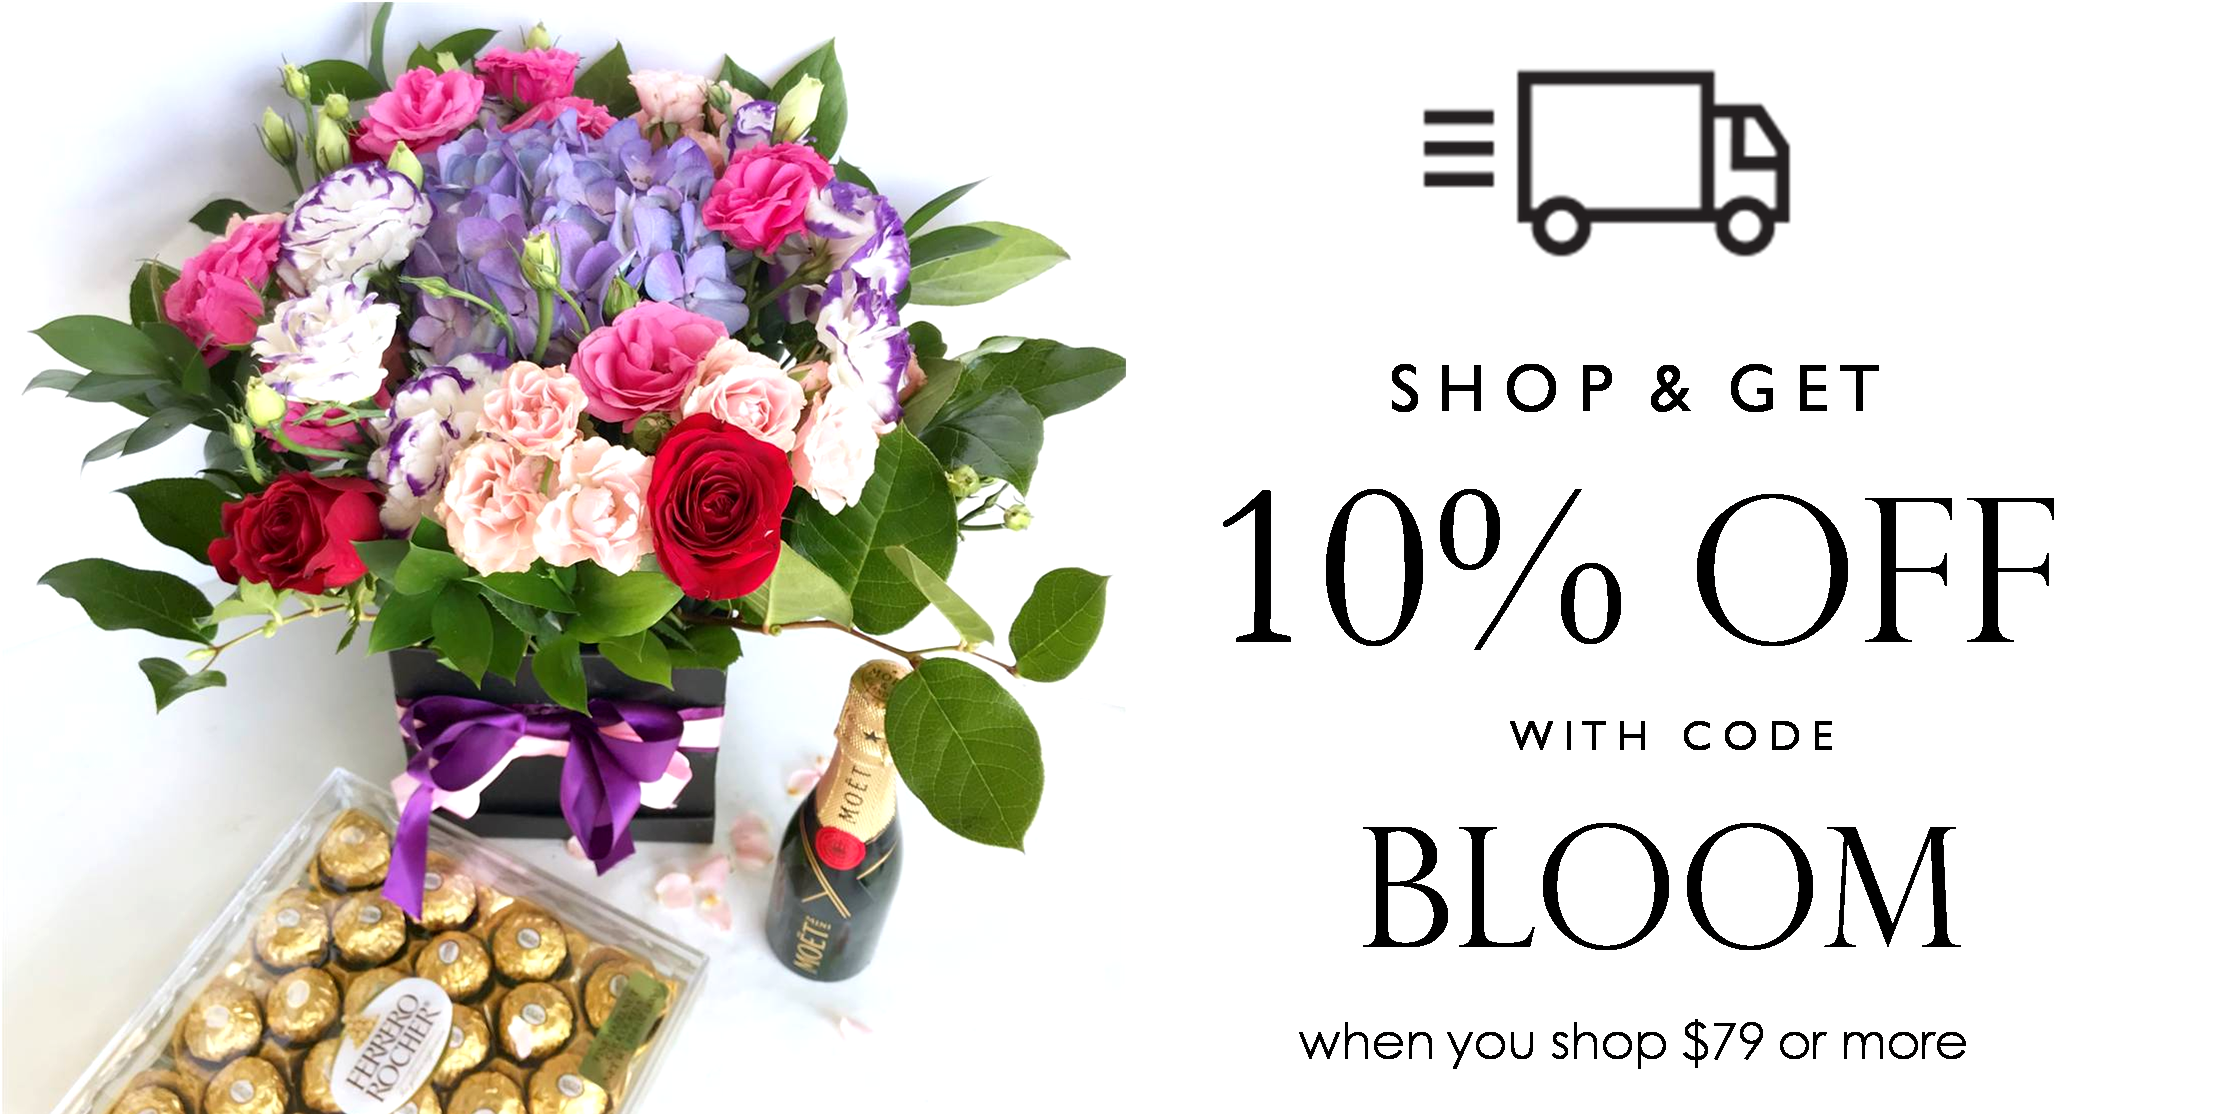 1we-make-el-paso-bloom-with-luxury-gift-rose-boxes-angies-floral-designs-angies-we-make-el-paso-el-paso-florist-birthdays-bloom-floral-instagram-corsages-delivery-roses-birthday-delivery-el-paso-florist-angies-flower.png